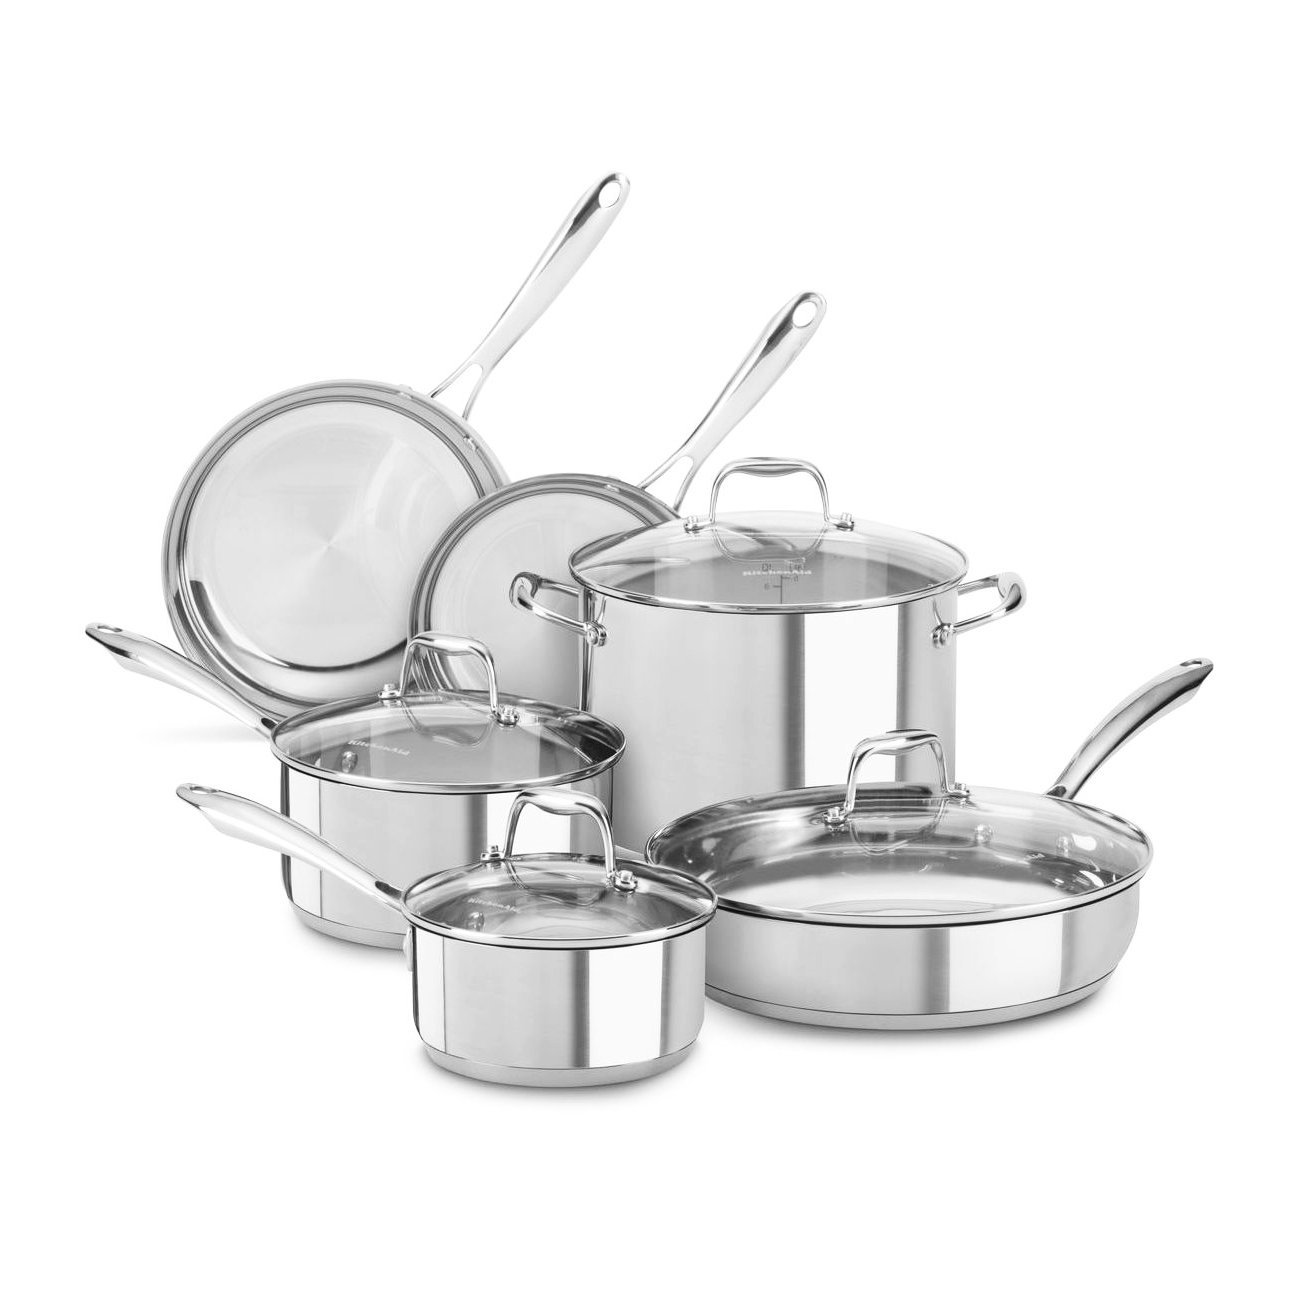 KitchenAid Stainless Steel Cookware Review